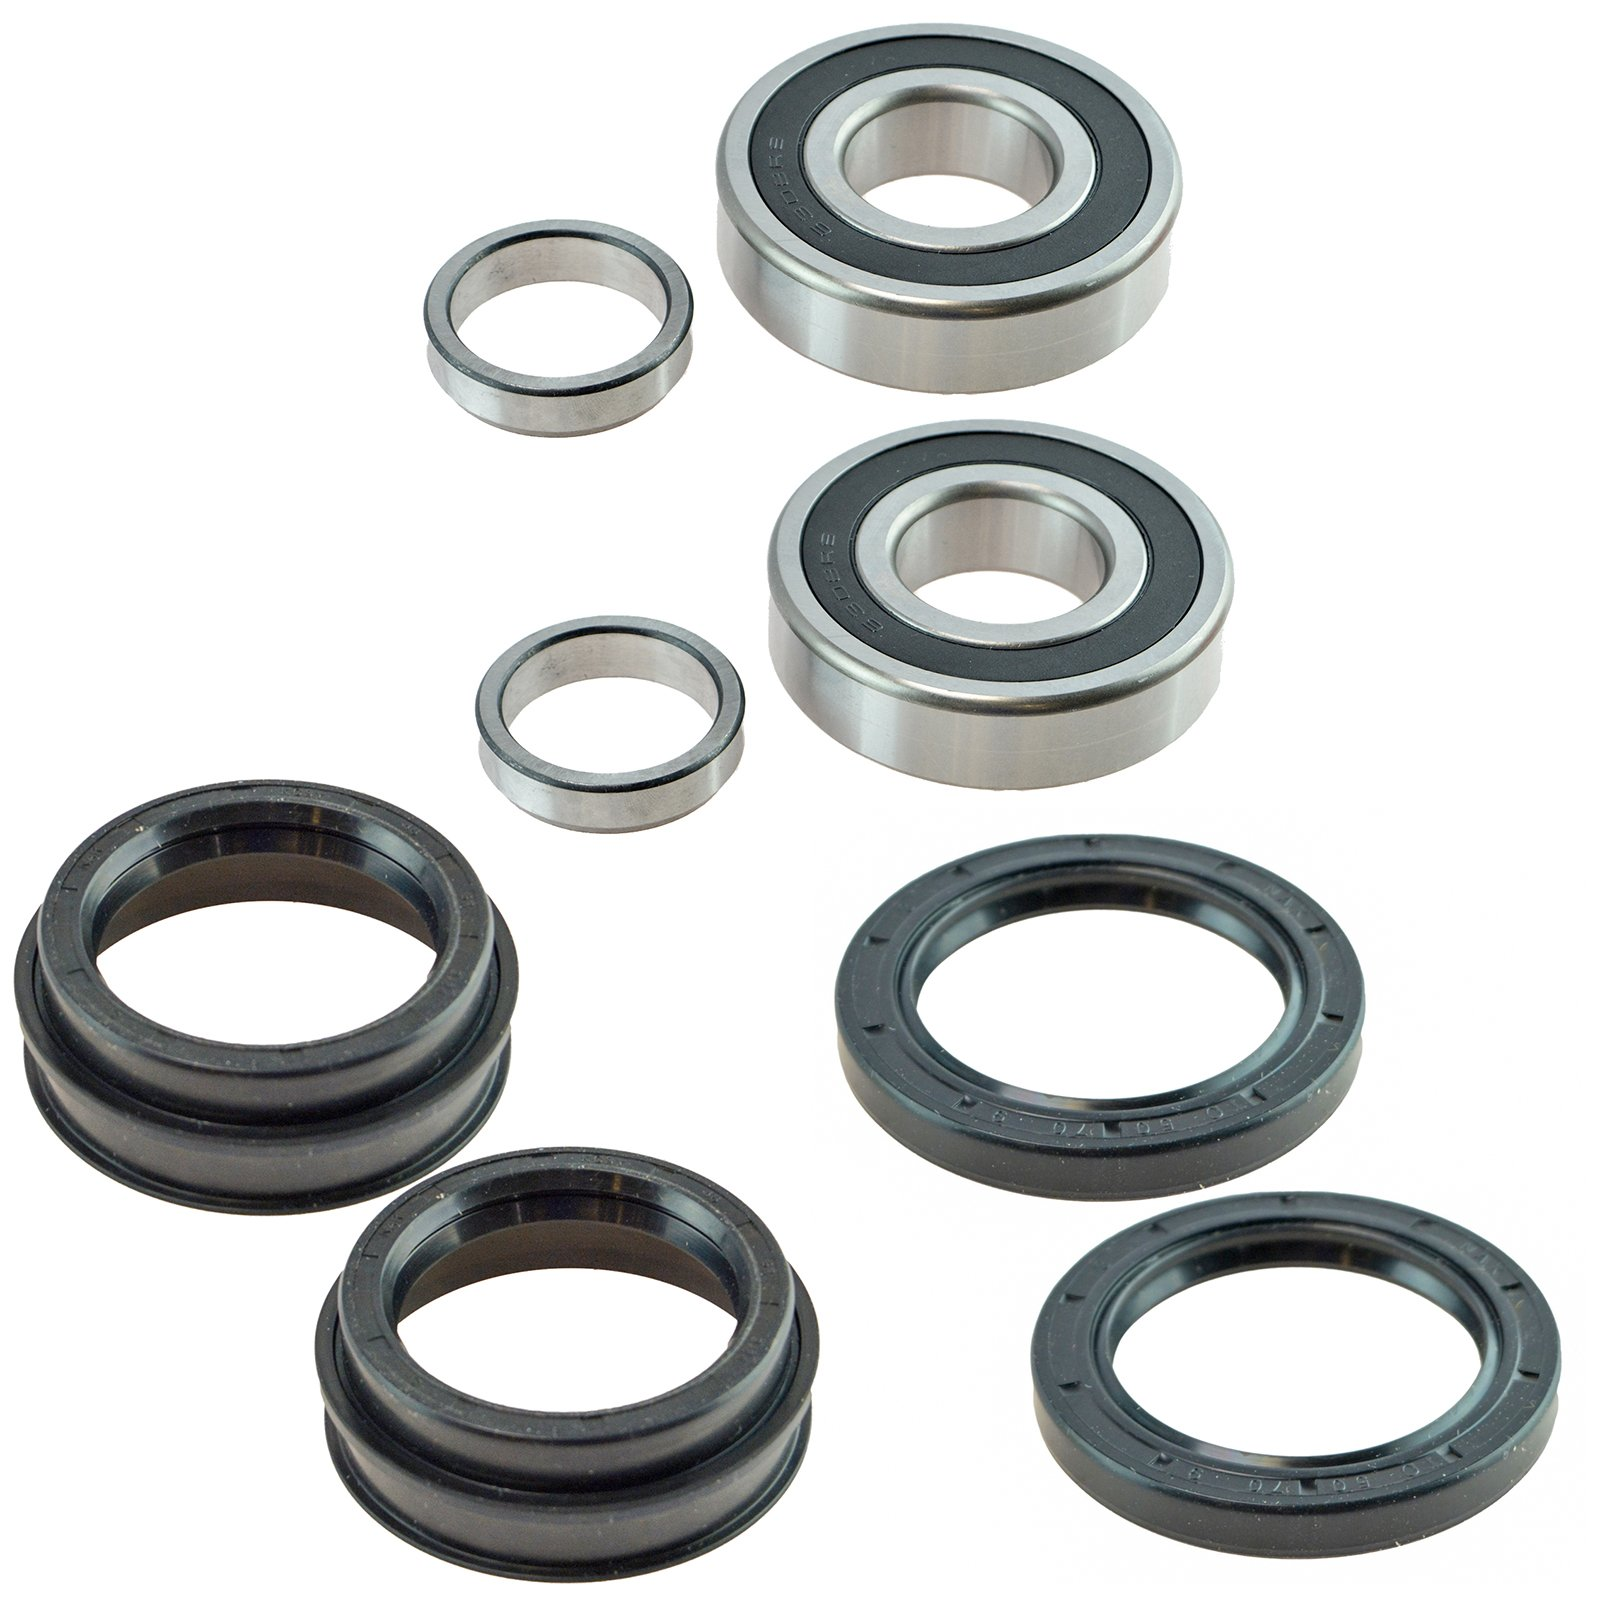 Rear Wheel Bearing w/Seal Kit LH & RH Sides for Toyota Tacoma T100 4Runner by TRQ